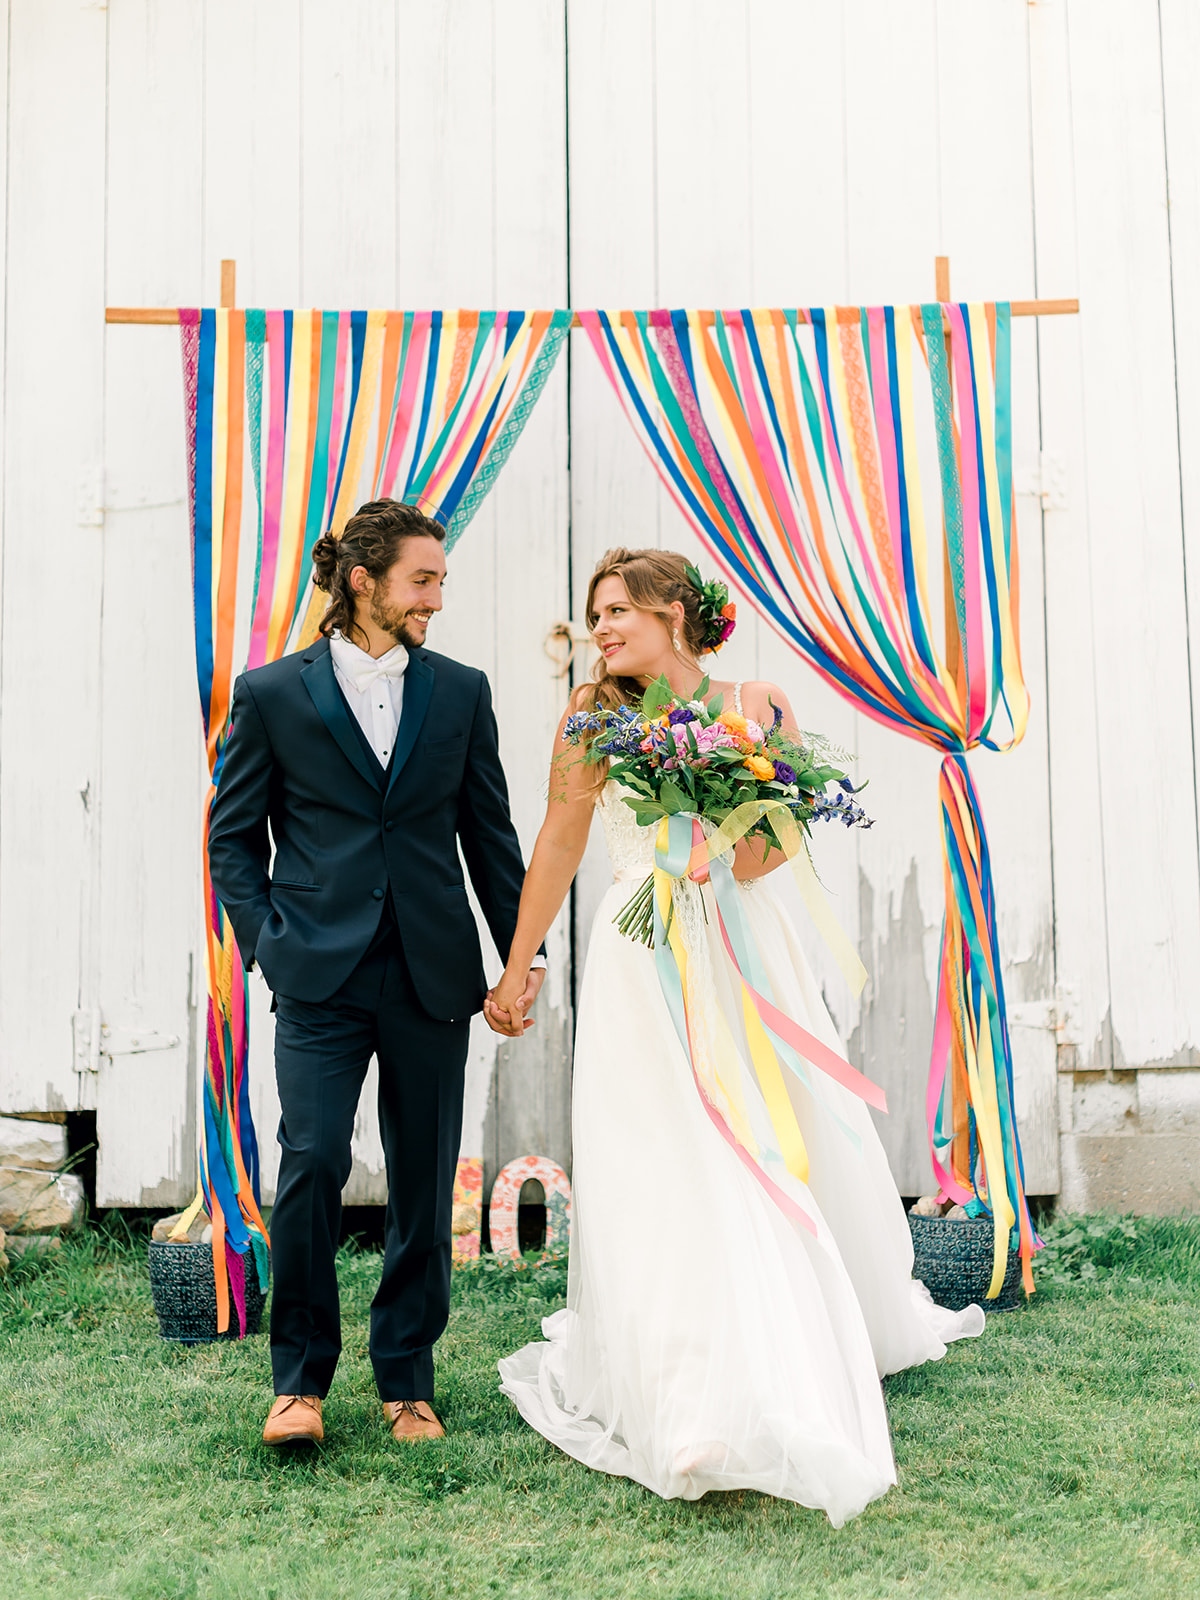 Fun & Colorful Barn Wedding Ceremony at Heaven Sent Farms in Avella Dawn Derbyshire Photography (17).jpg